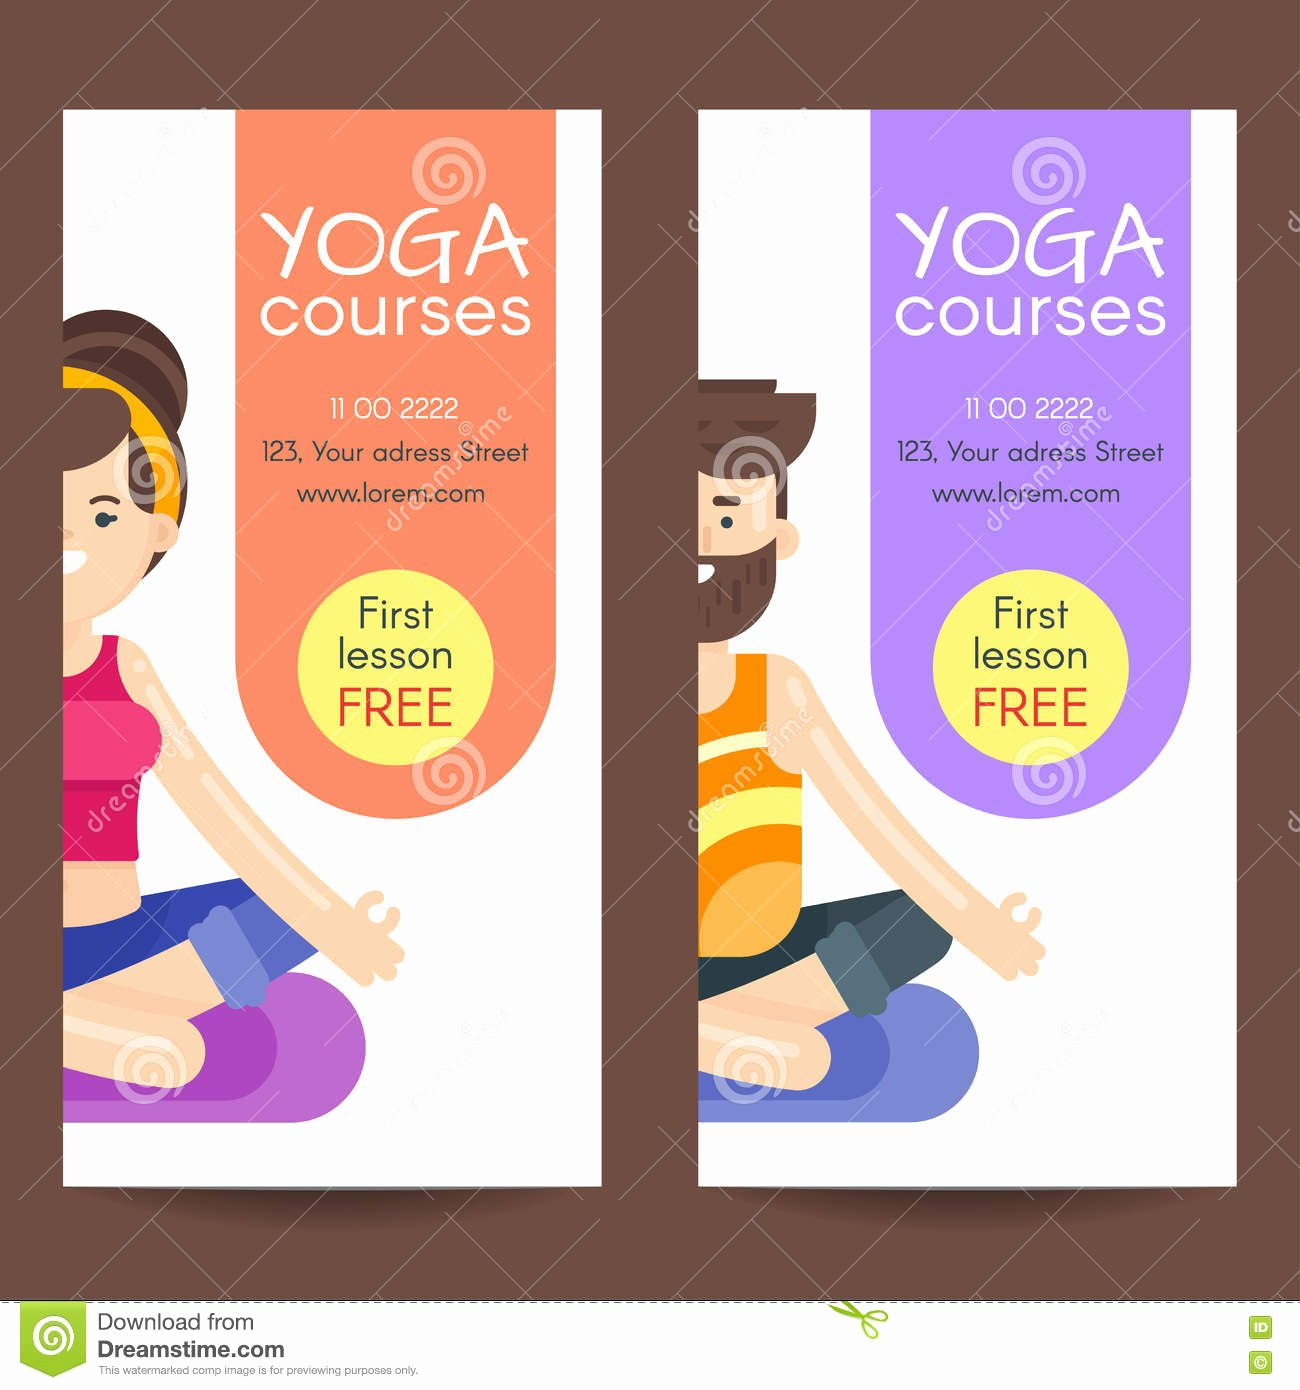 Yoga Flyer Template Free Fresh Vector Flat Style Design Template for Yoga Flyer Stock